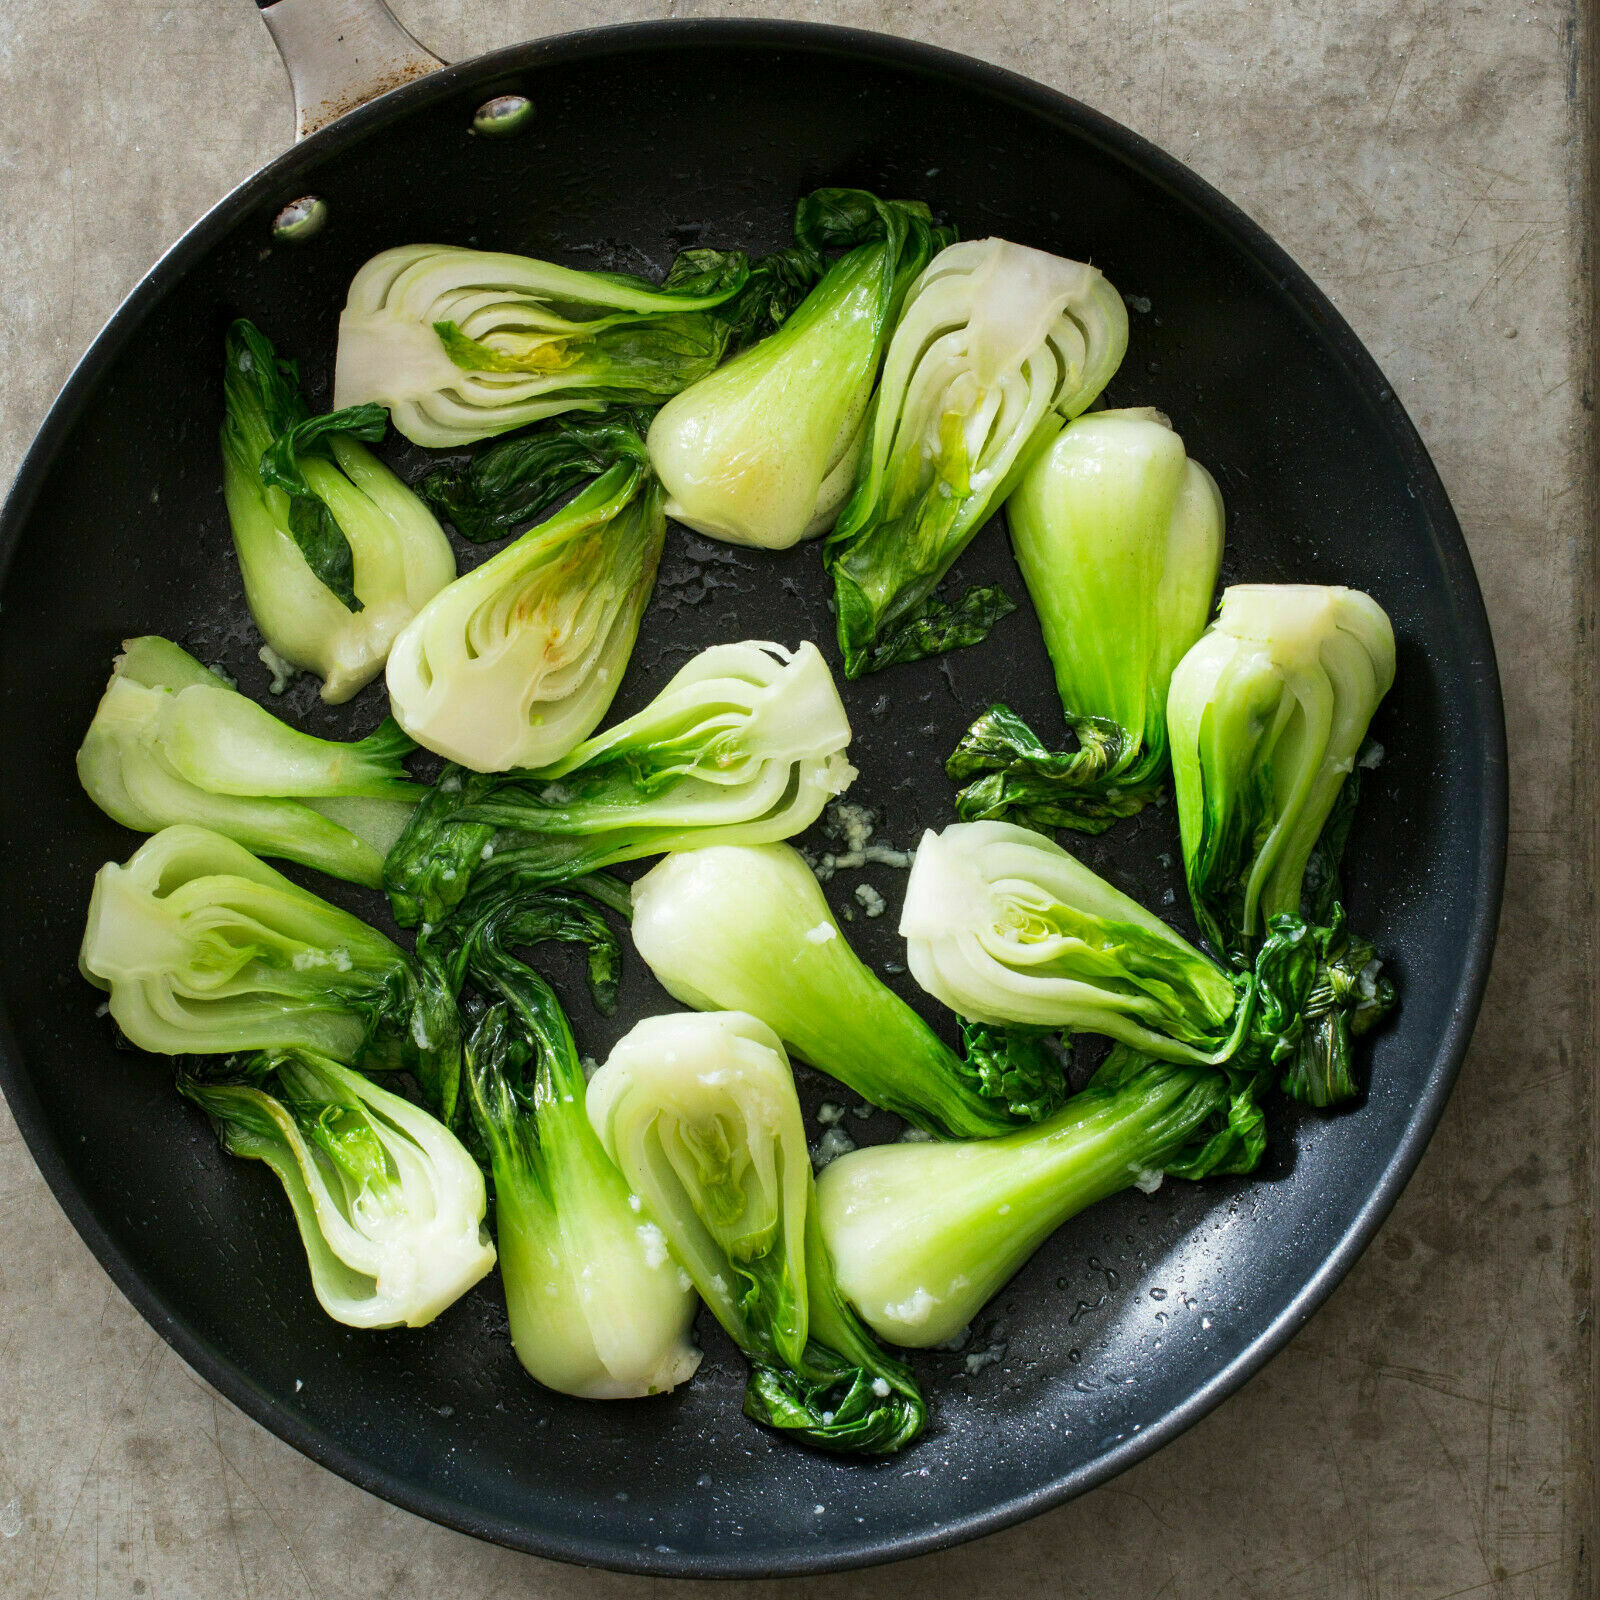 500 Chinese Cabbage Seeds Green Vegetable Seeds For Healthy Bok Choy Seeds For Sale Online Ebay